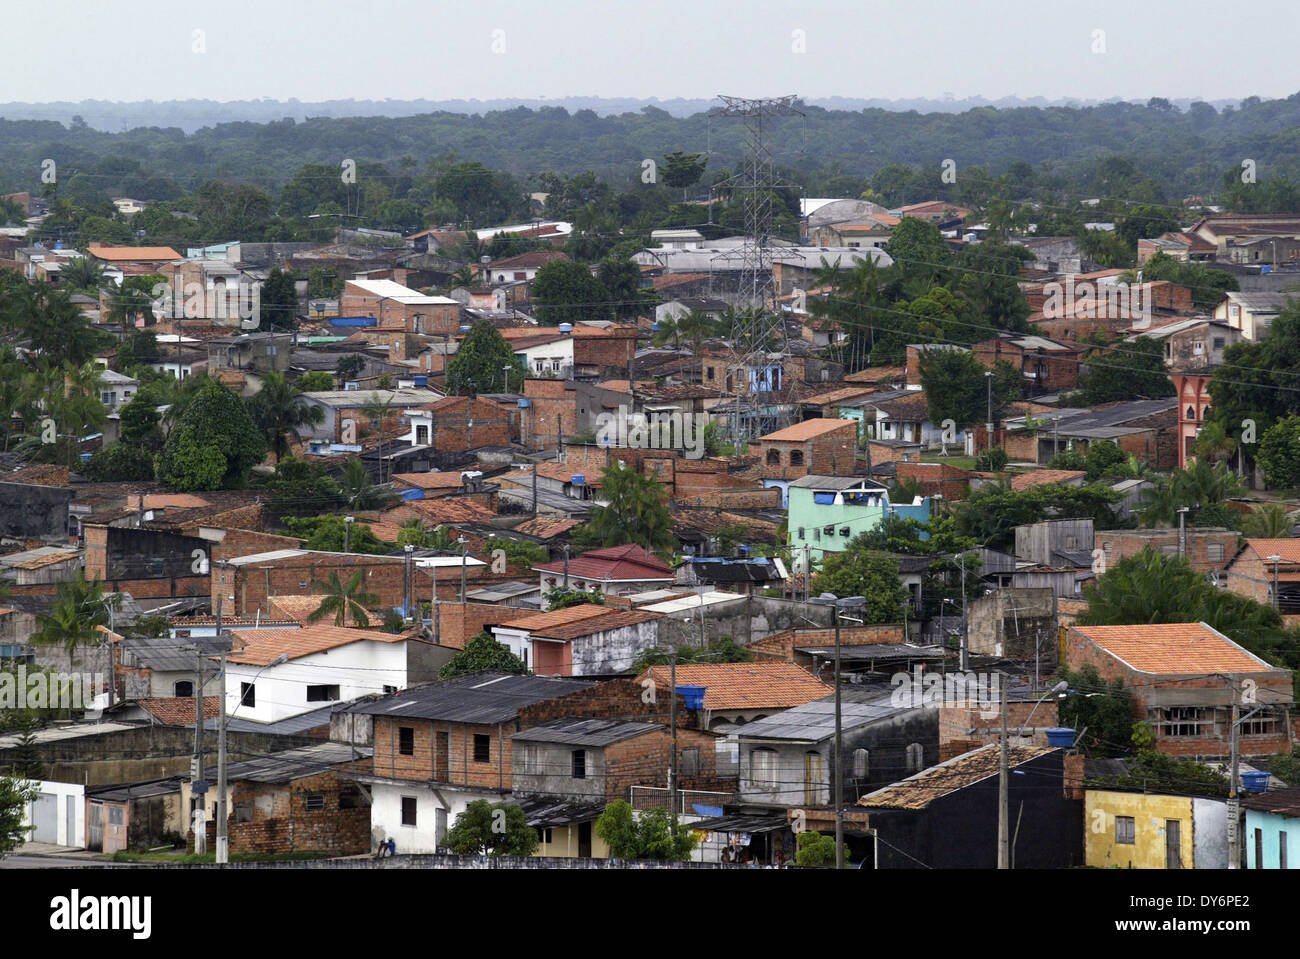 General view of the periphery in Belém northen Brazil. - Stock Image